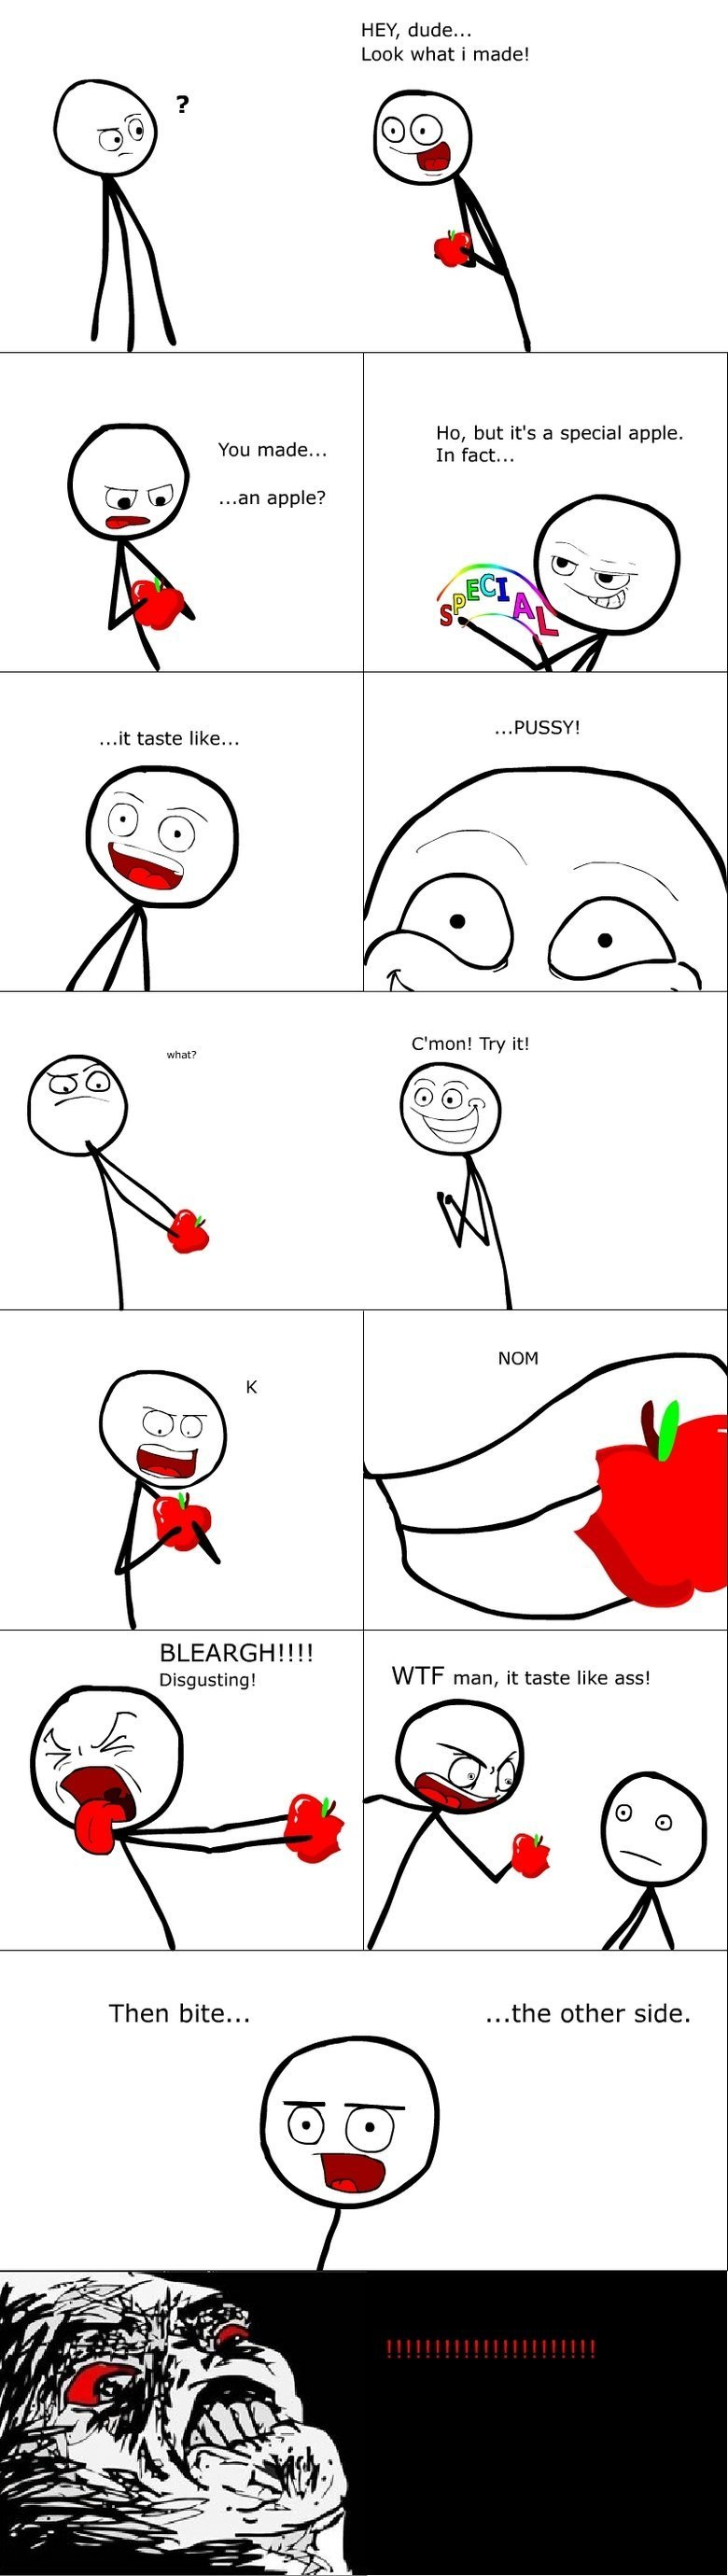 This joke made my day!. Sorry people! Just heard this is a repost but haven't seen it before, new here . Look what i made! You made... an apple? Ho, but it' s a